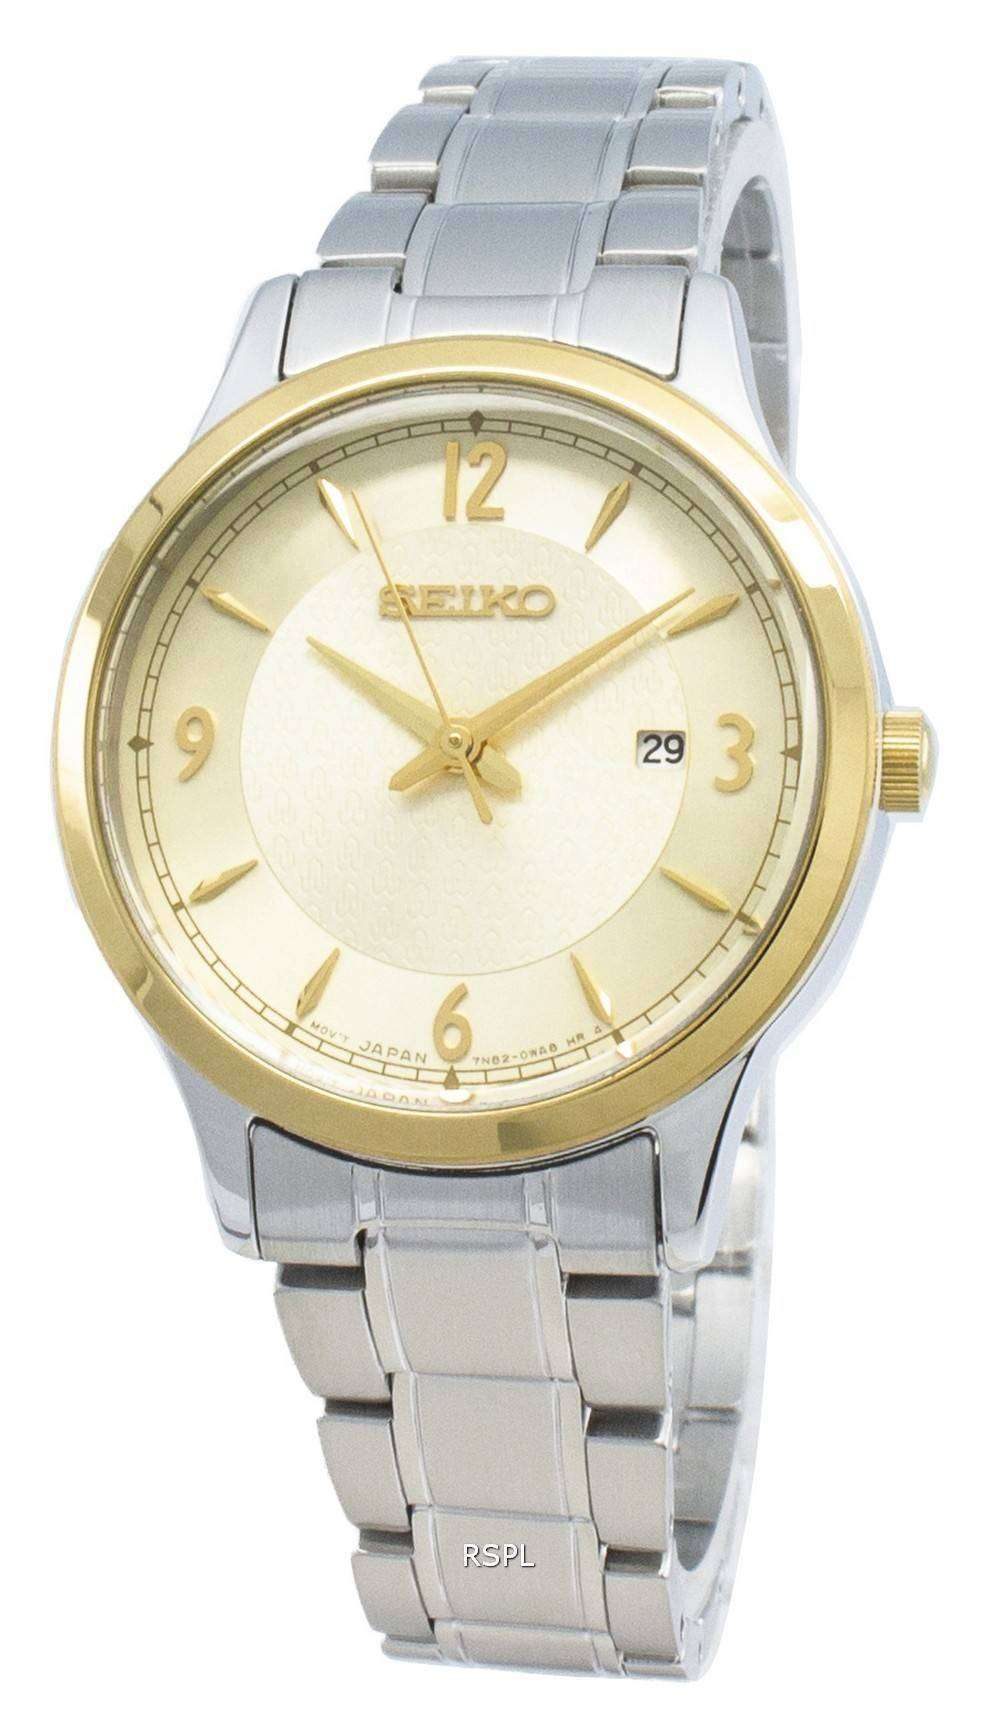 Seiko SXDH04P SXDH04P1 SXDH04 Special Edition Quartz Women's Watch